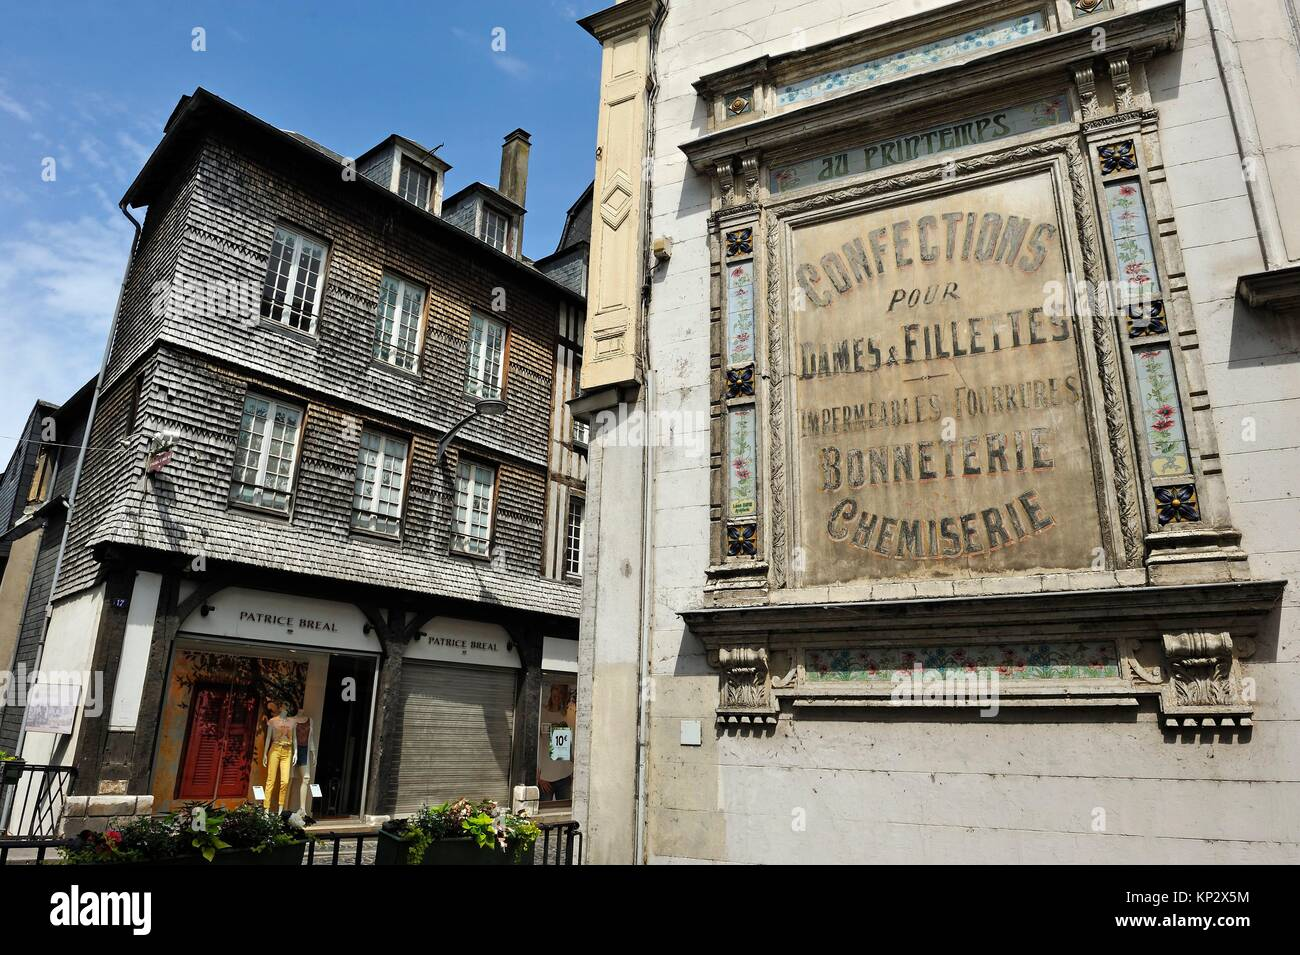 ancient advertising sign at Pont-Audemer, Eure department, Normandy region, France, Europe. - Stock Image